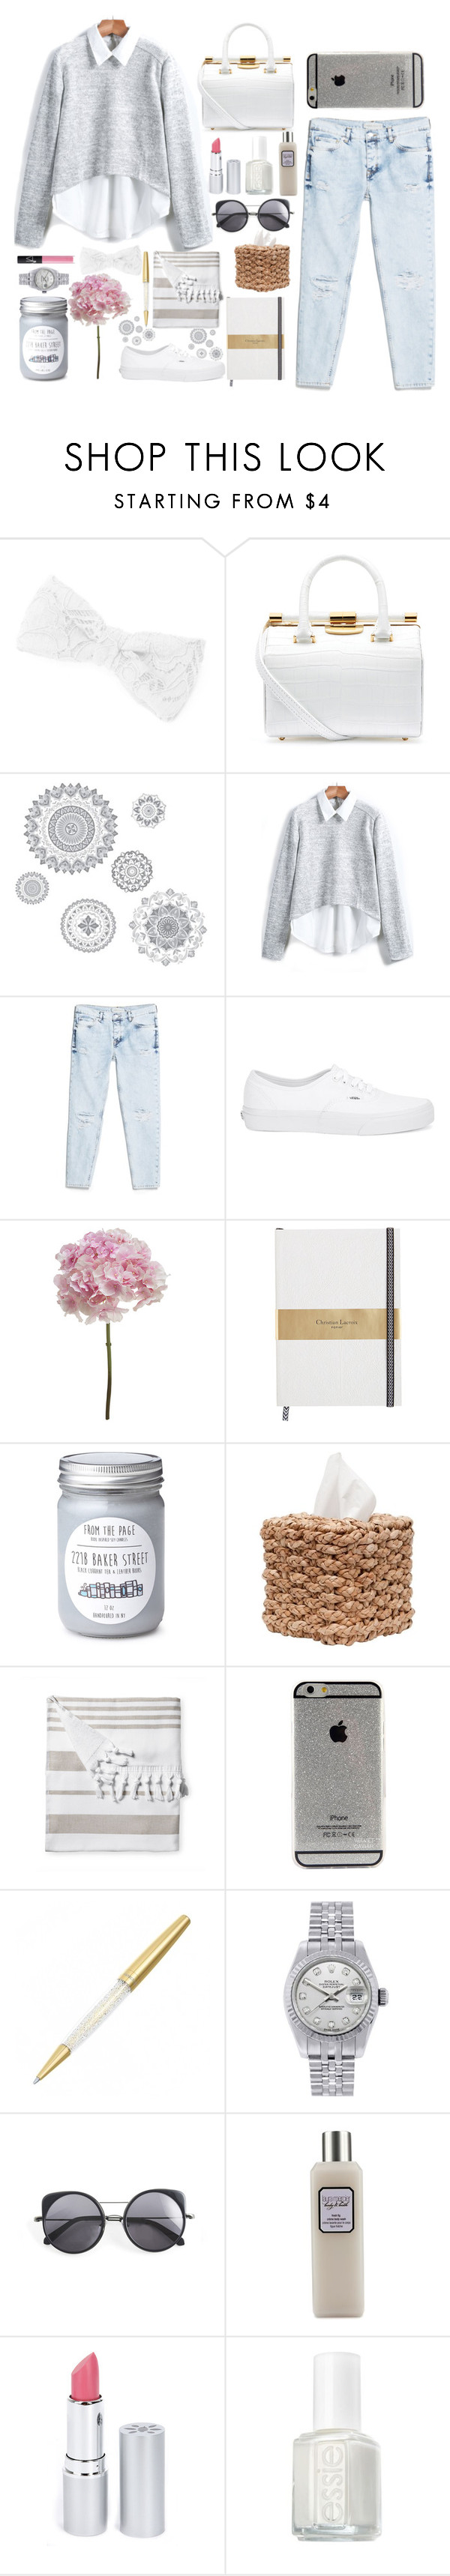 """""""Sin título #30"""" by julianaorozcoa ❤ liked on Polyvore featuring beauty, claire's, Tyler Alexandra, WallPops, MANGO, Vans, DESTIN, Serena & Lily, Rolex and Wood Wood"""